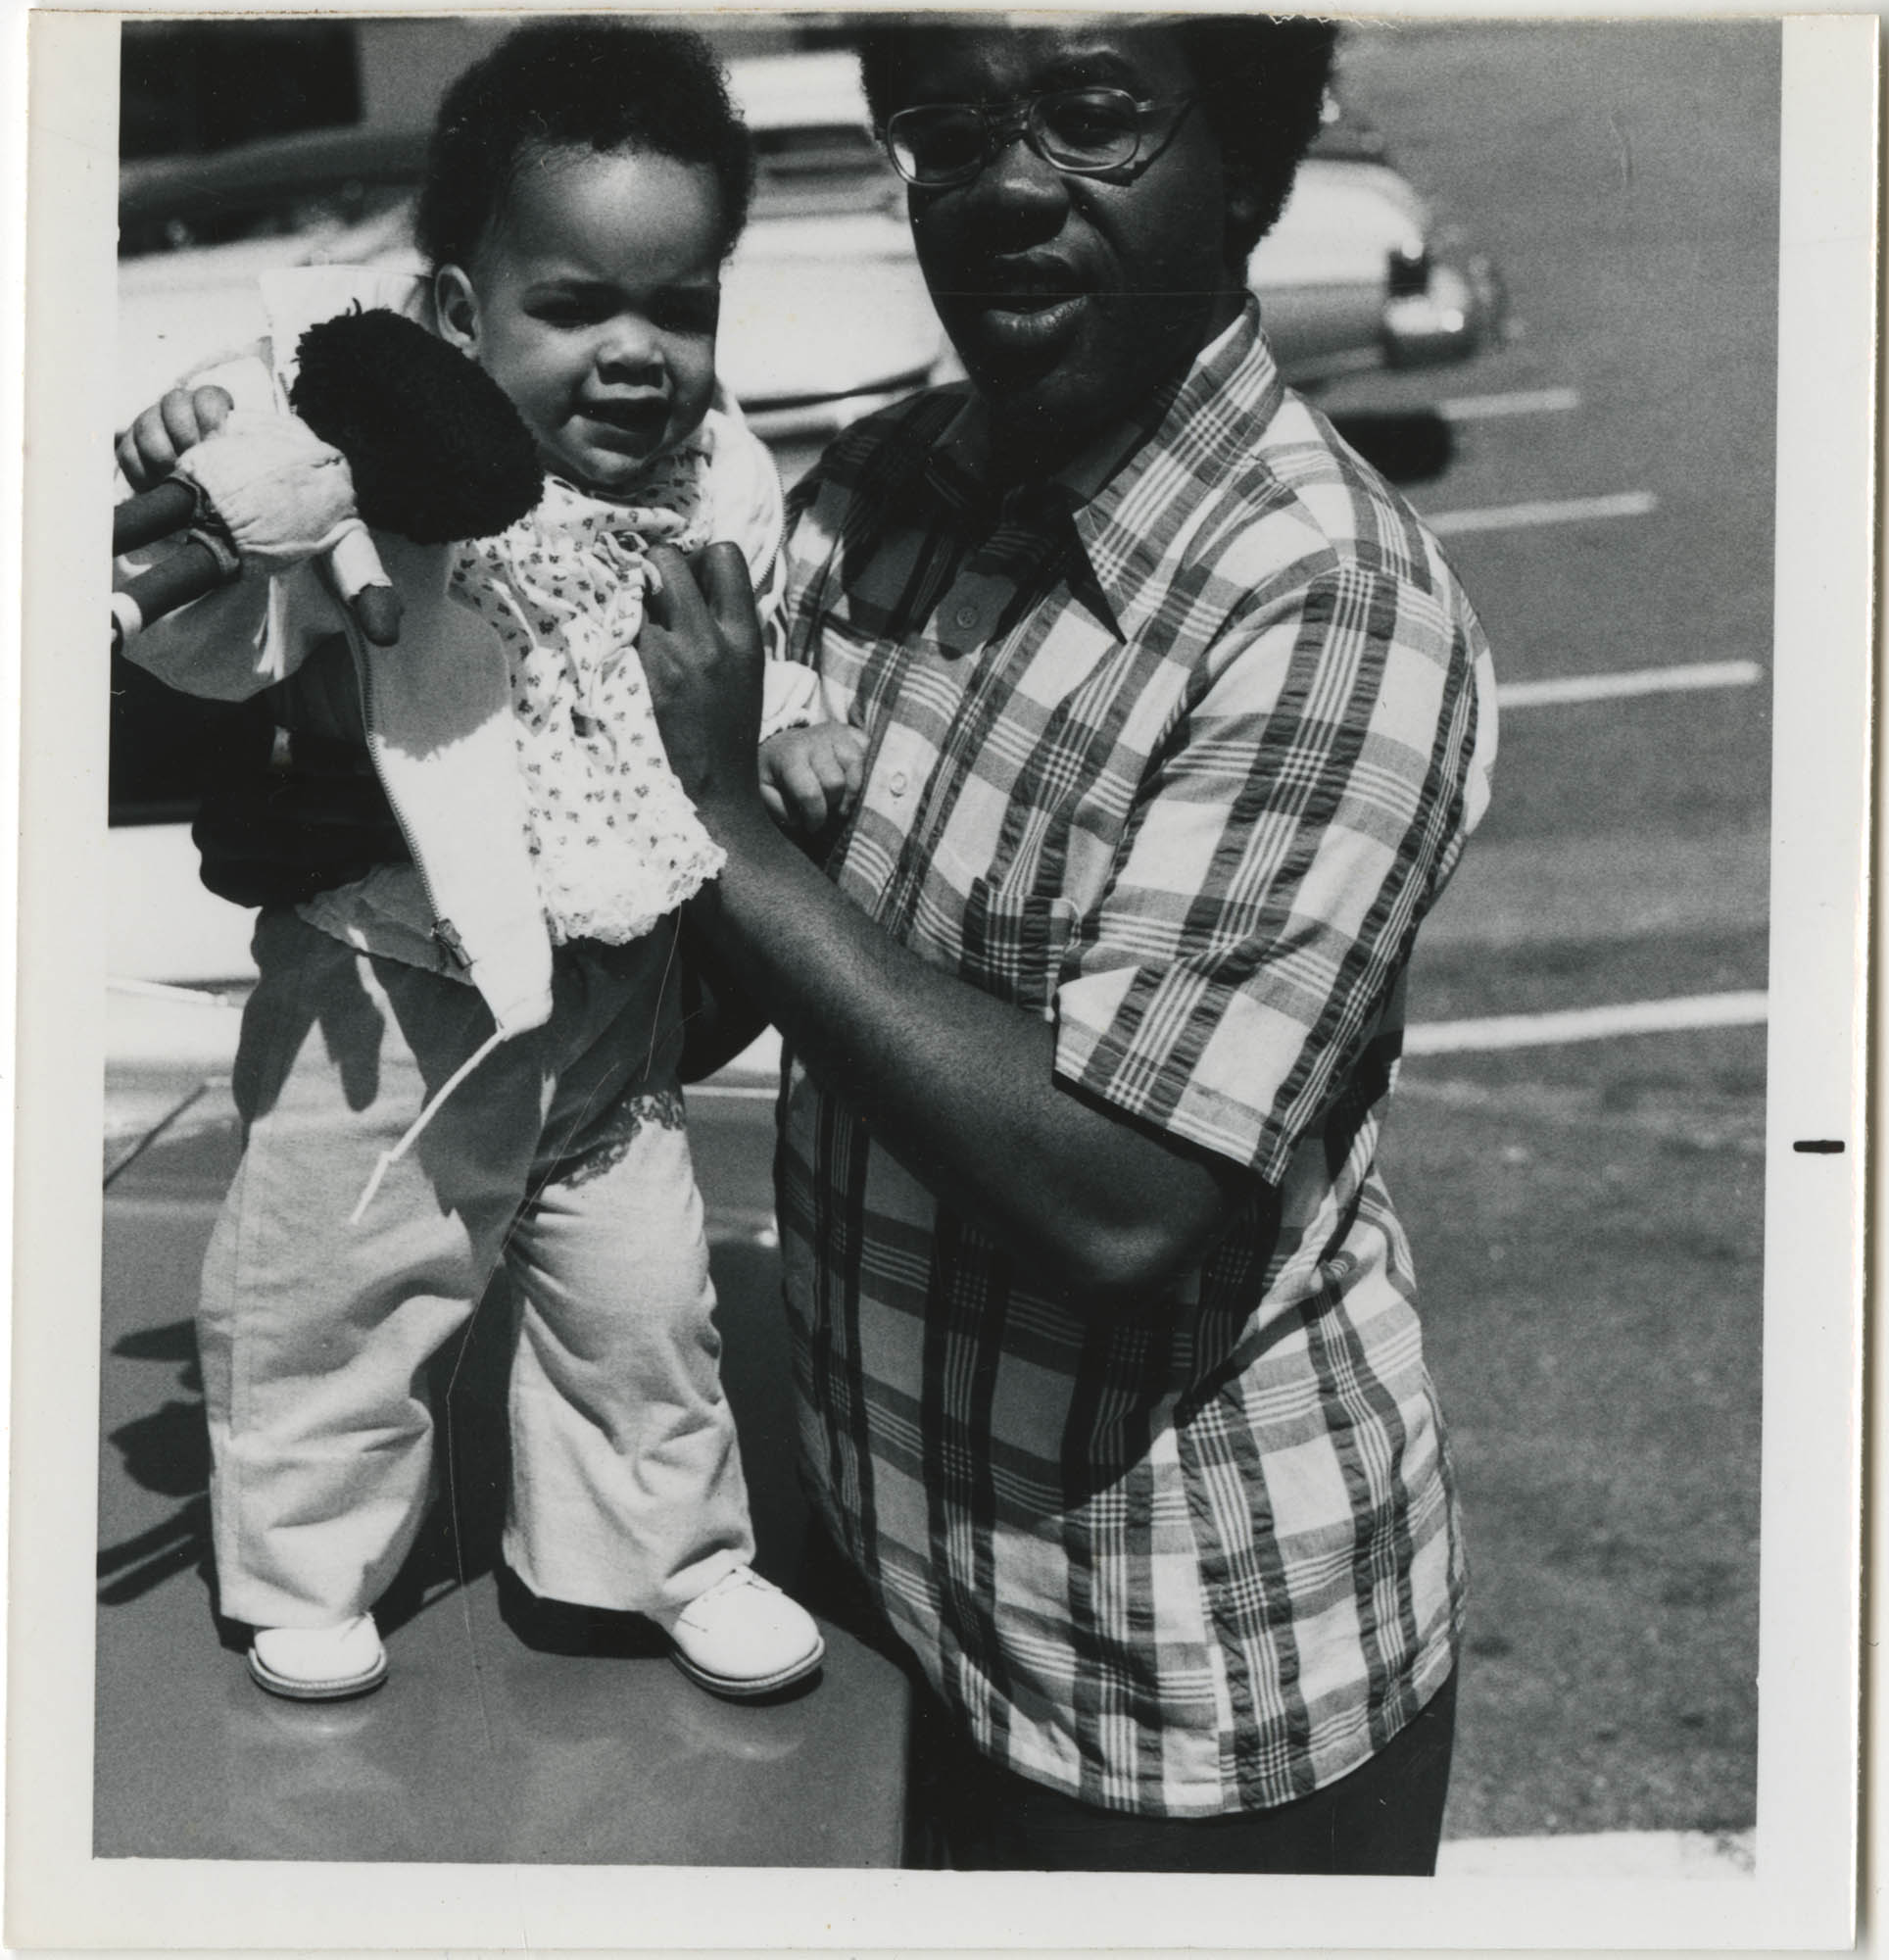 Photograph of Man and Baby